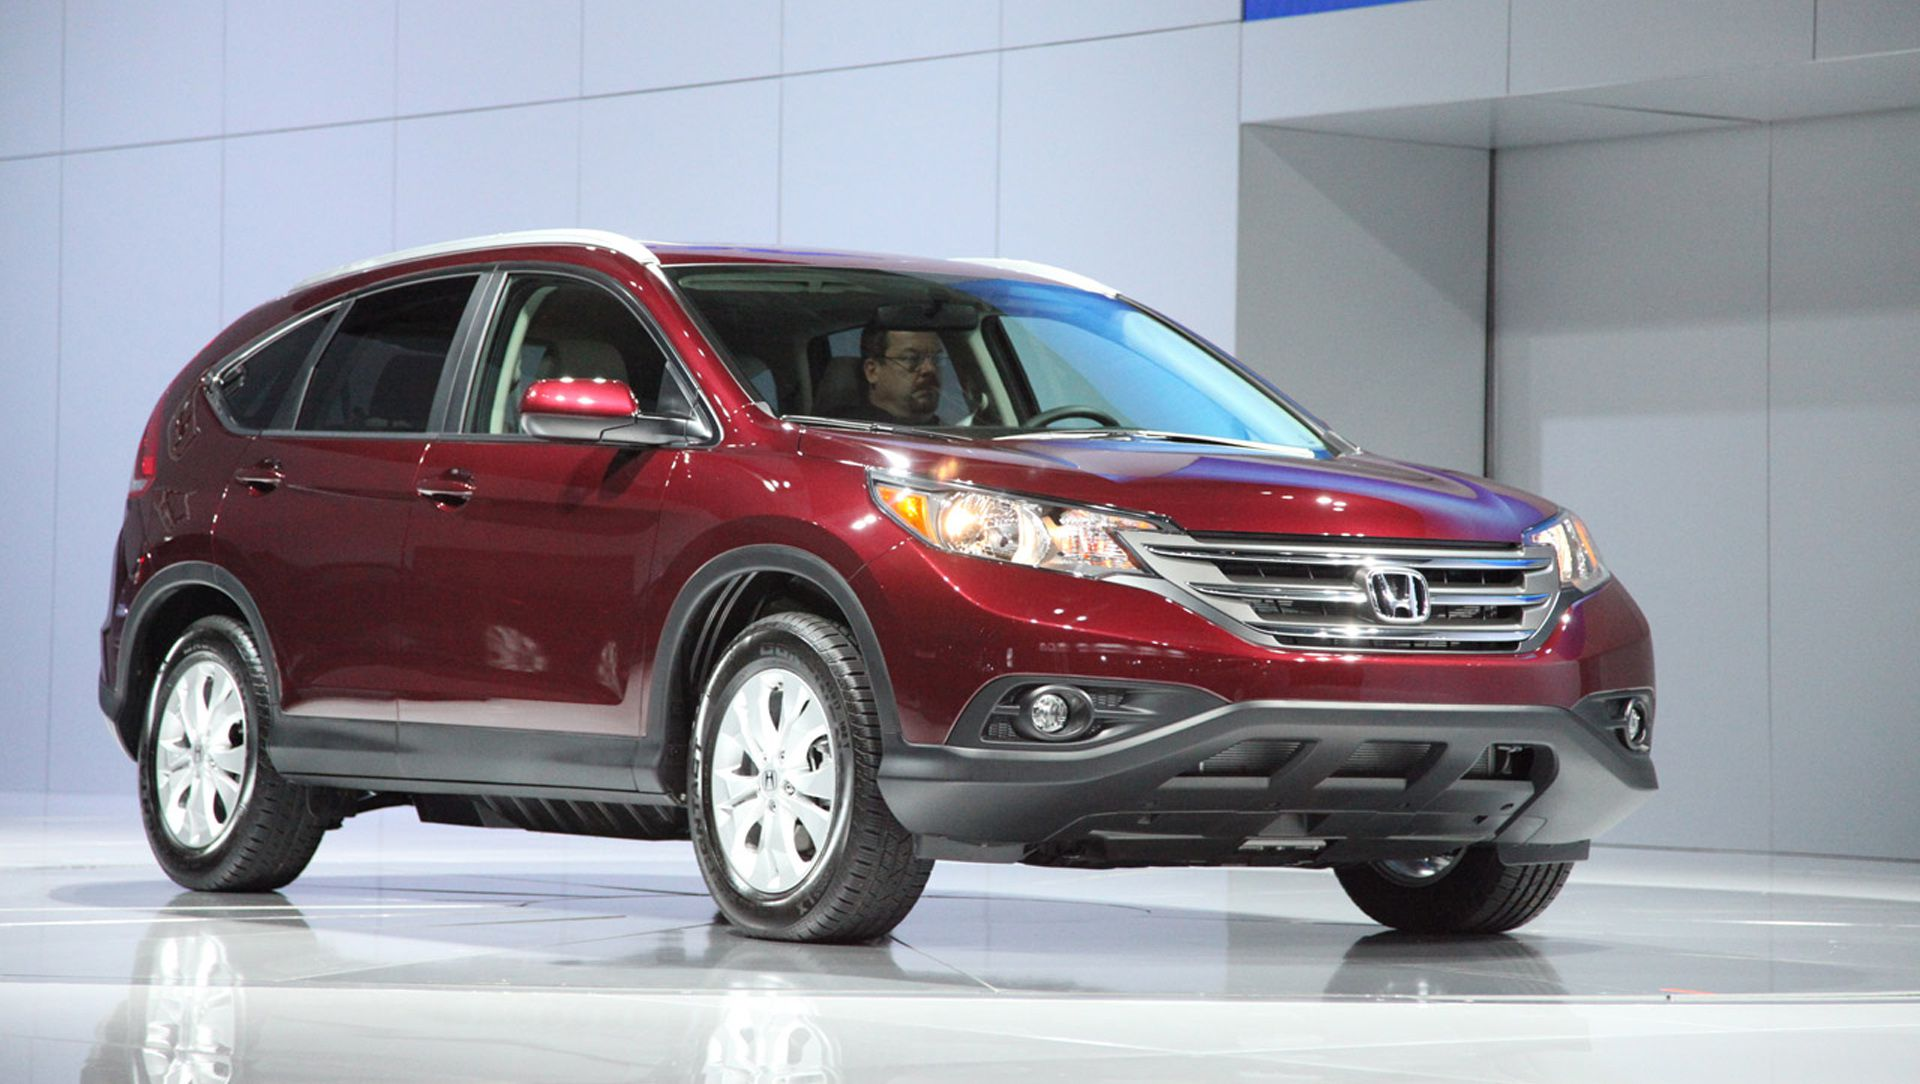 2013 Honda Accord And Cr V Earn Best Value Awards From